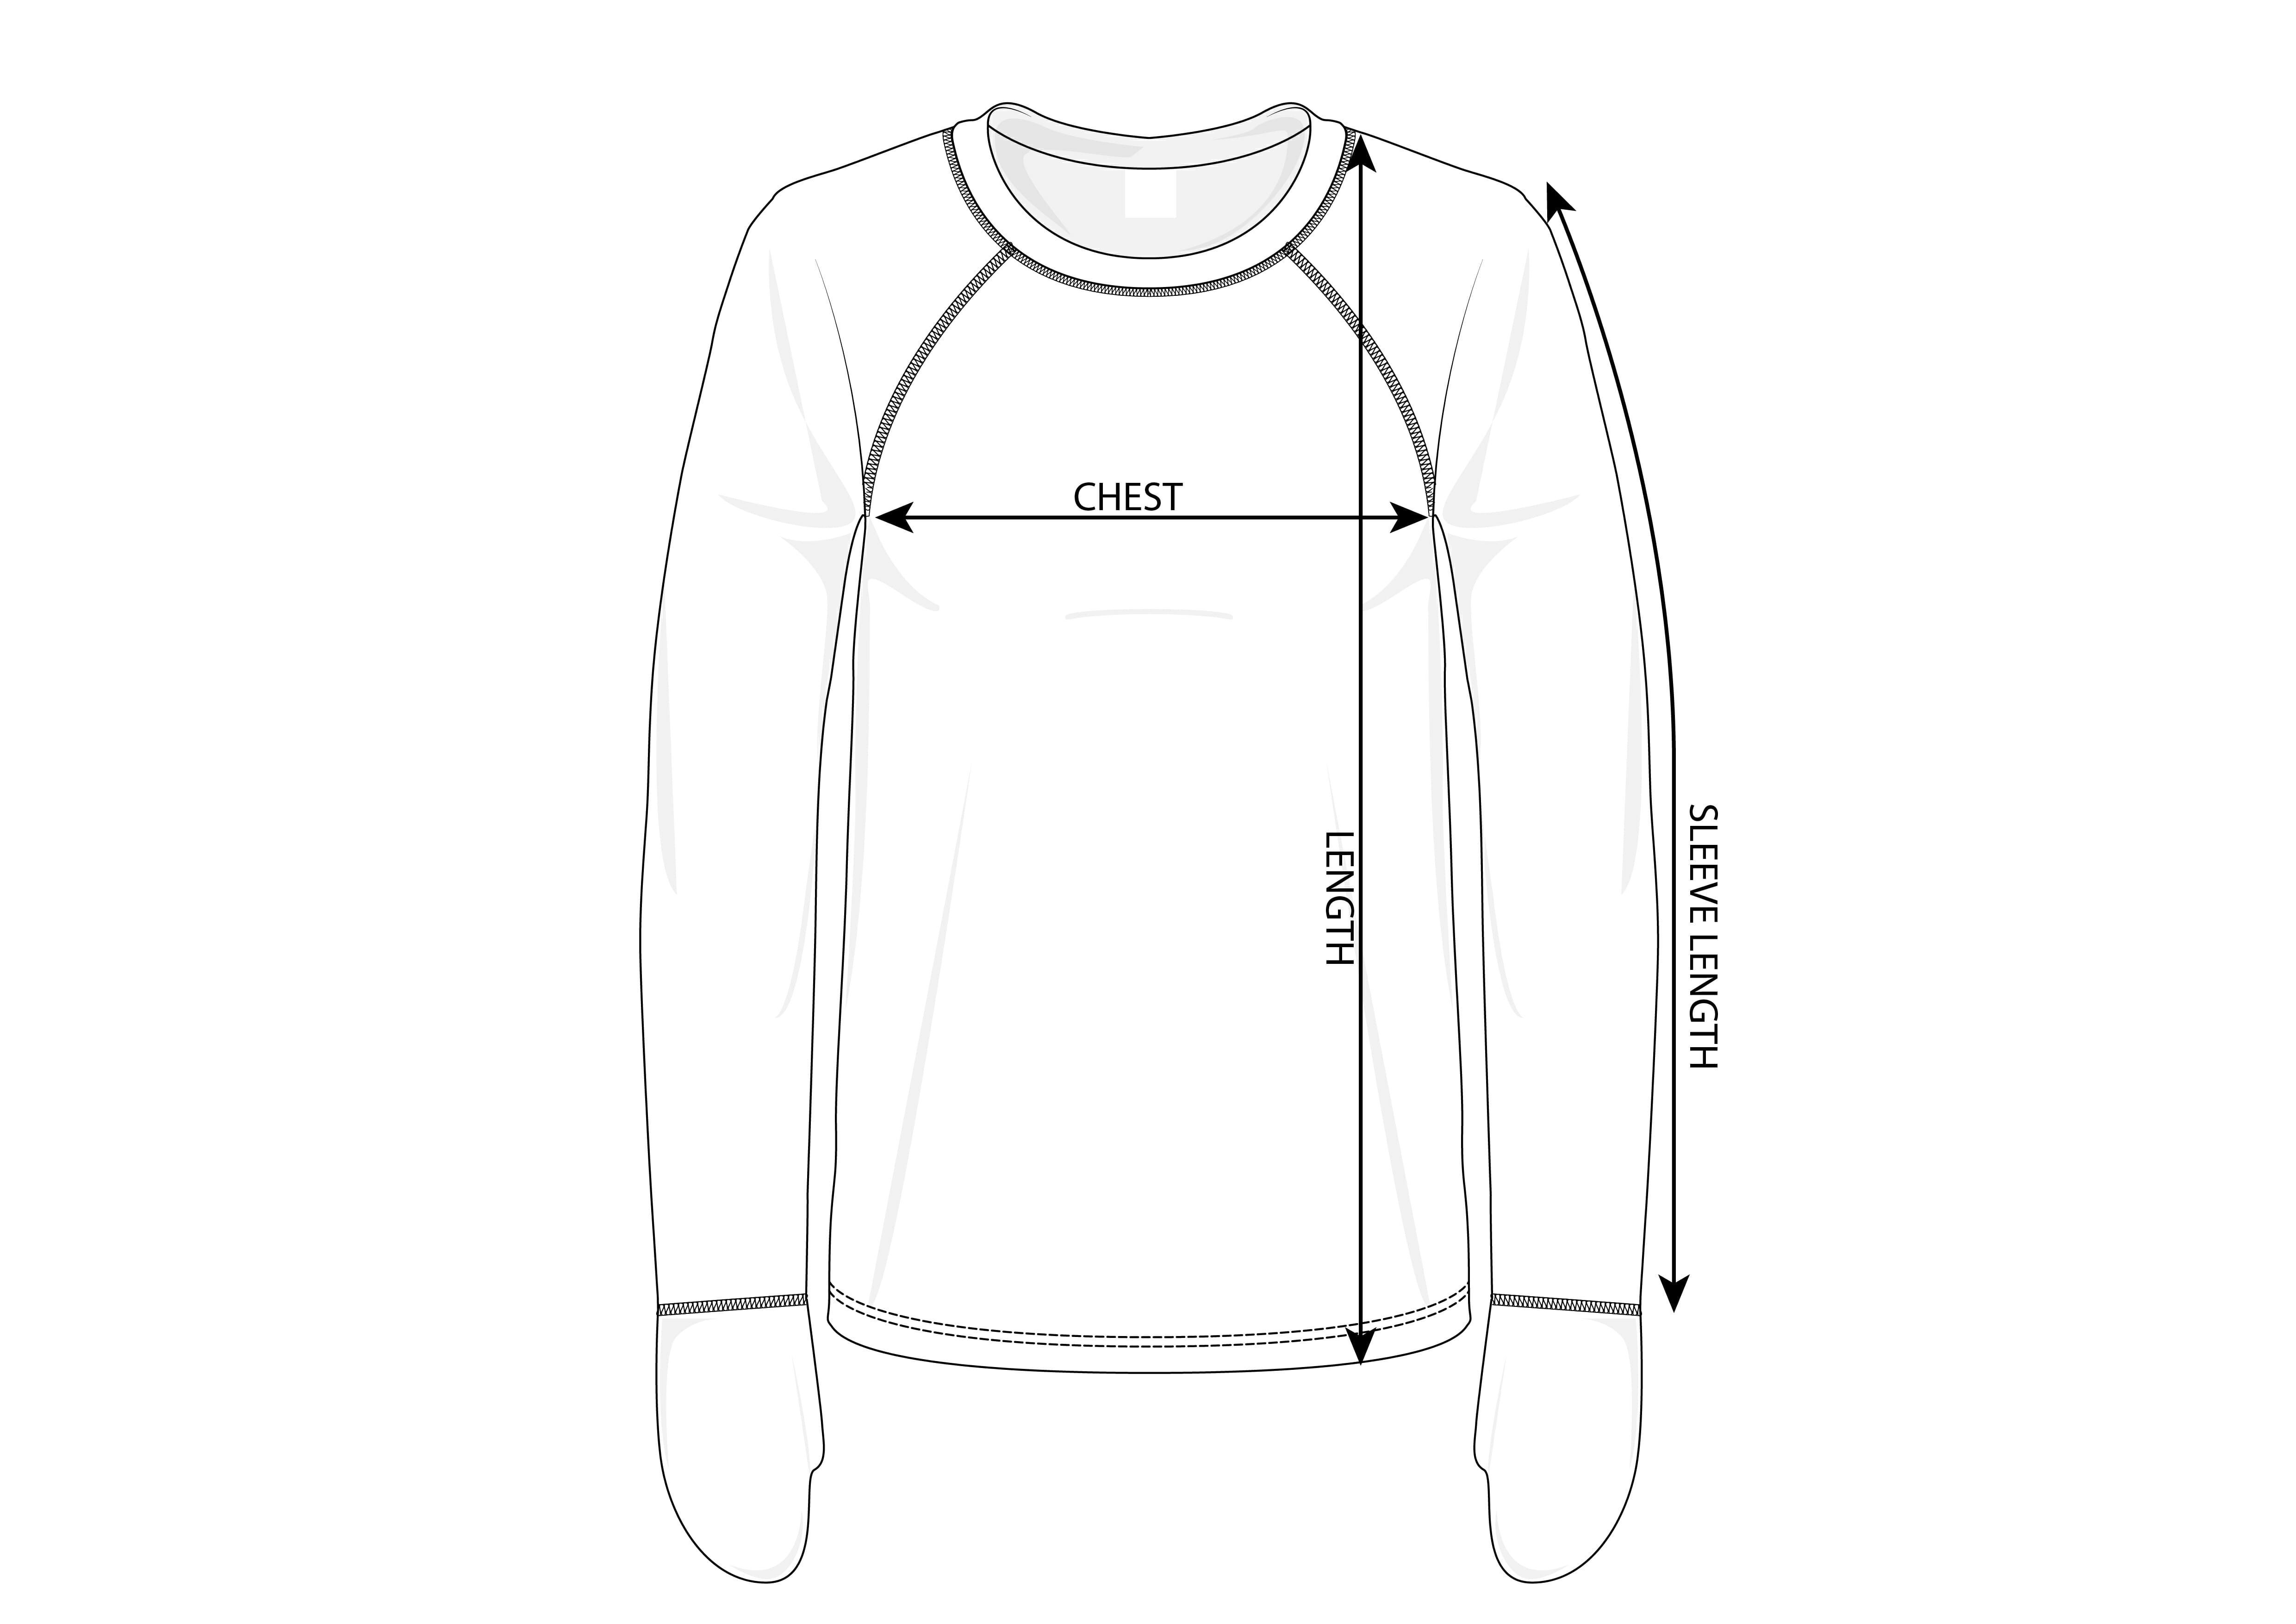 Eczema clothing mittened T how to measure for best fit guide